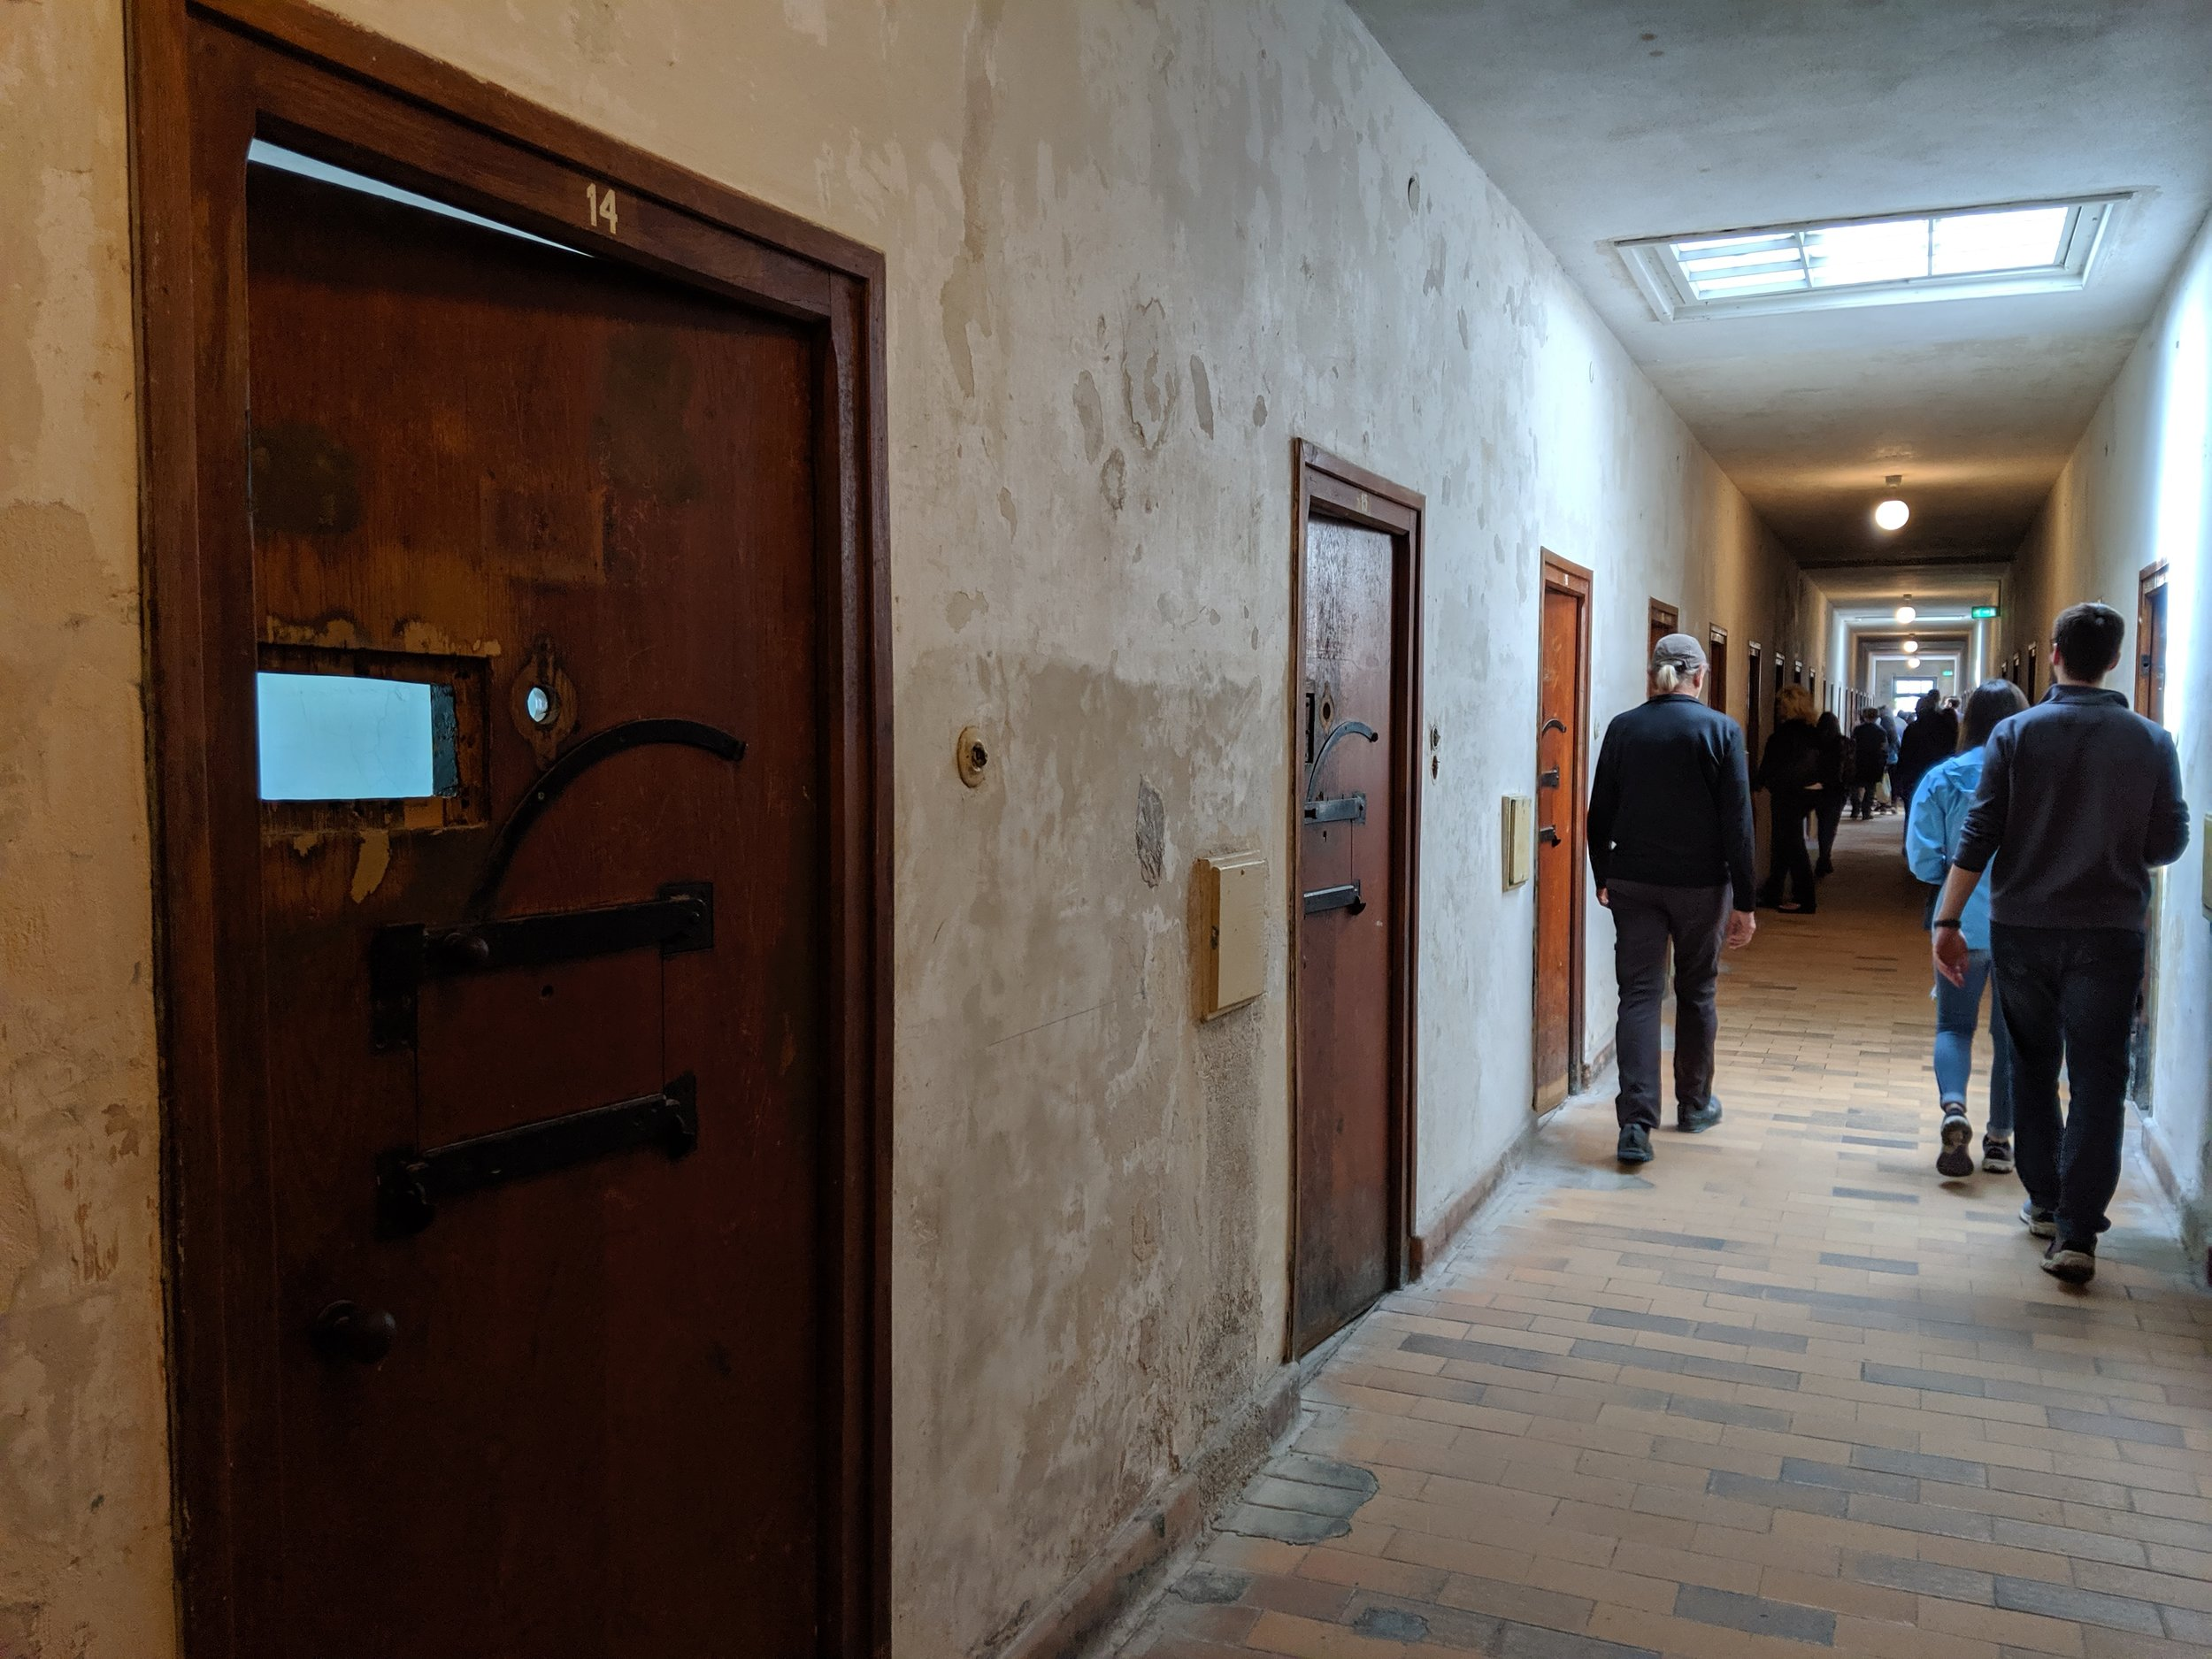 This photo is of the insides of one buildings where high value prisoners were held before and during the war. Members of the group who attempted to assassinate Hitler during the latter years of the war were held here.